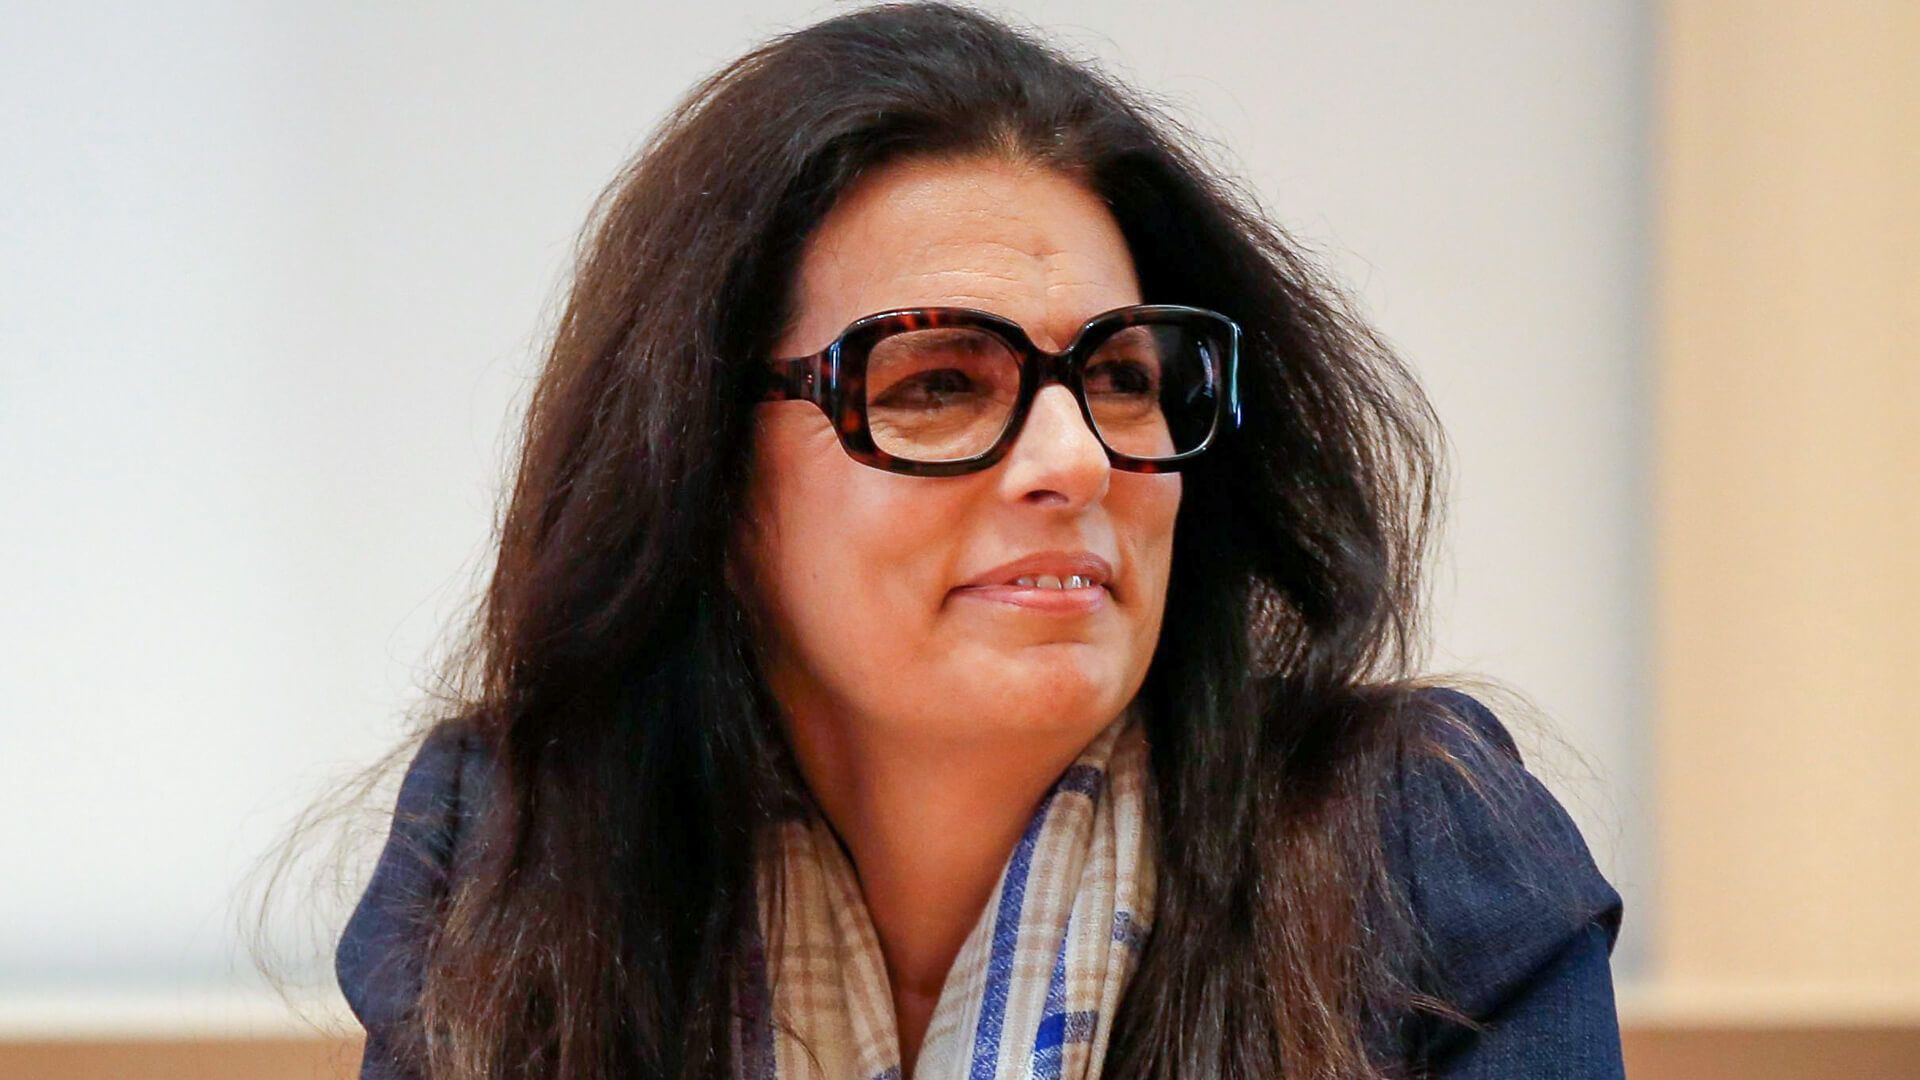 Francoise Bettencourt Meyers heiress of L'Oreal cosmetics is Richest Woman in the World